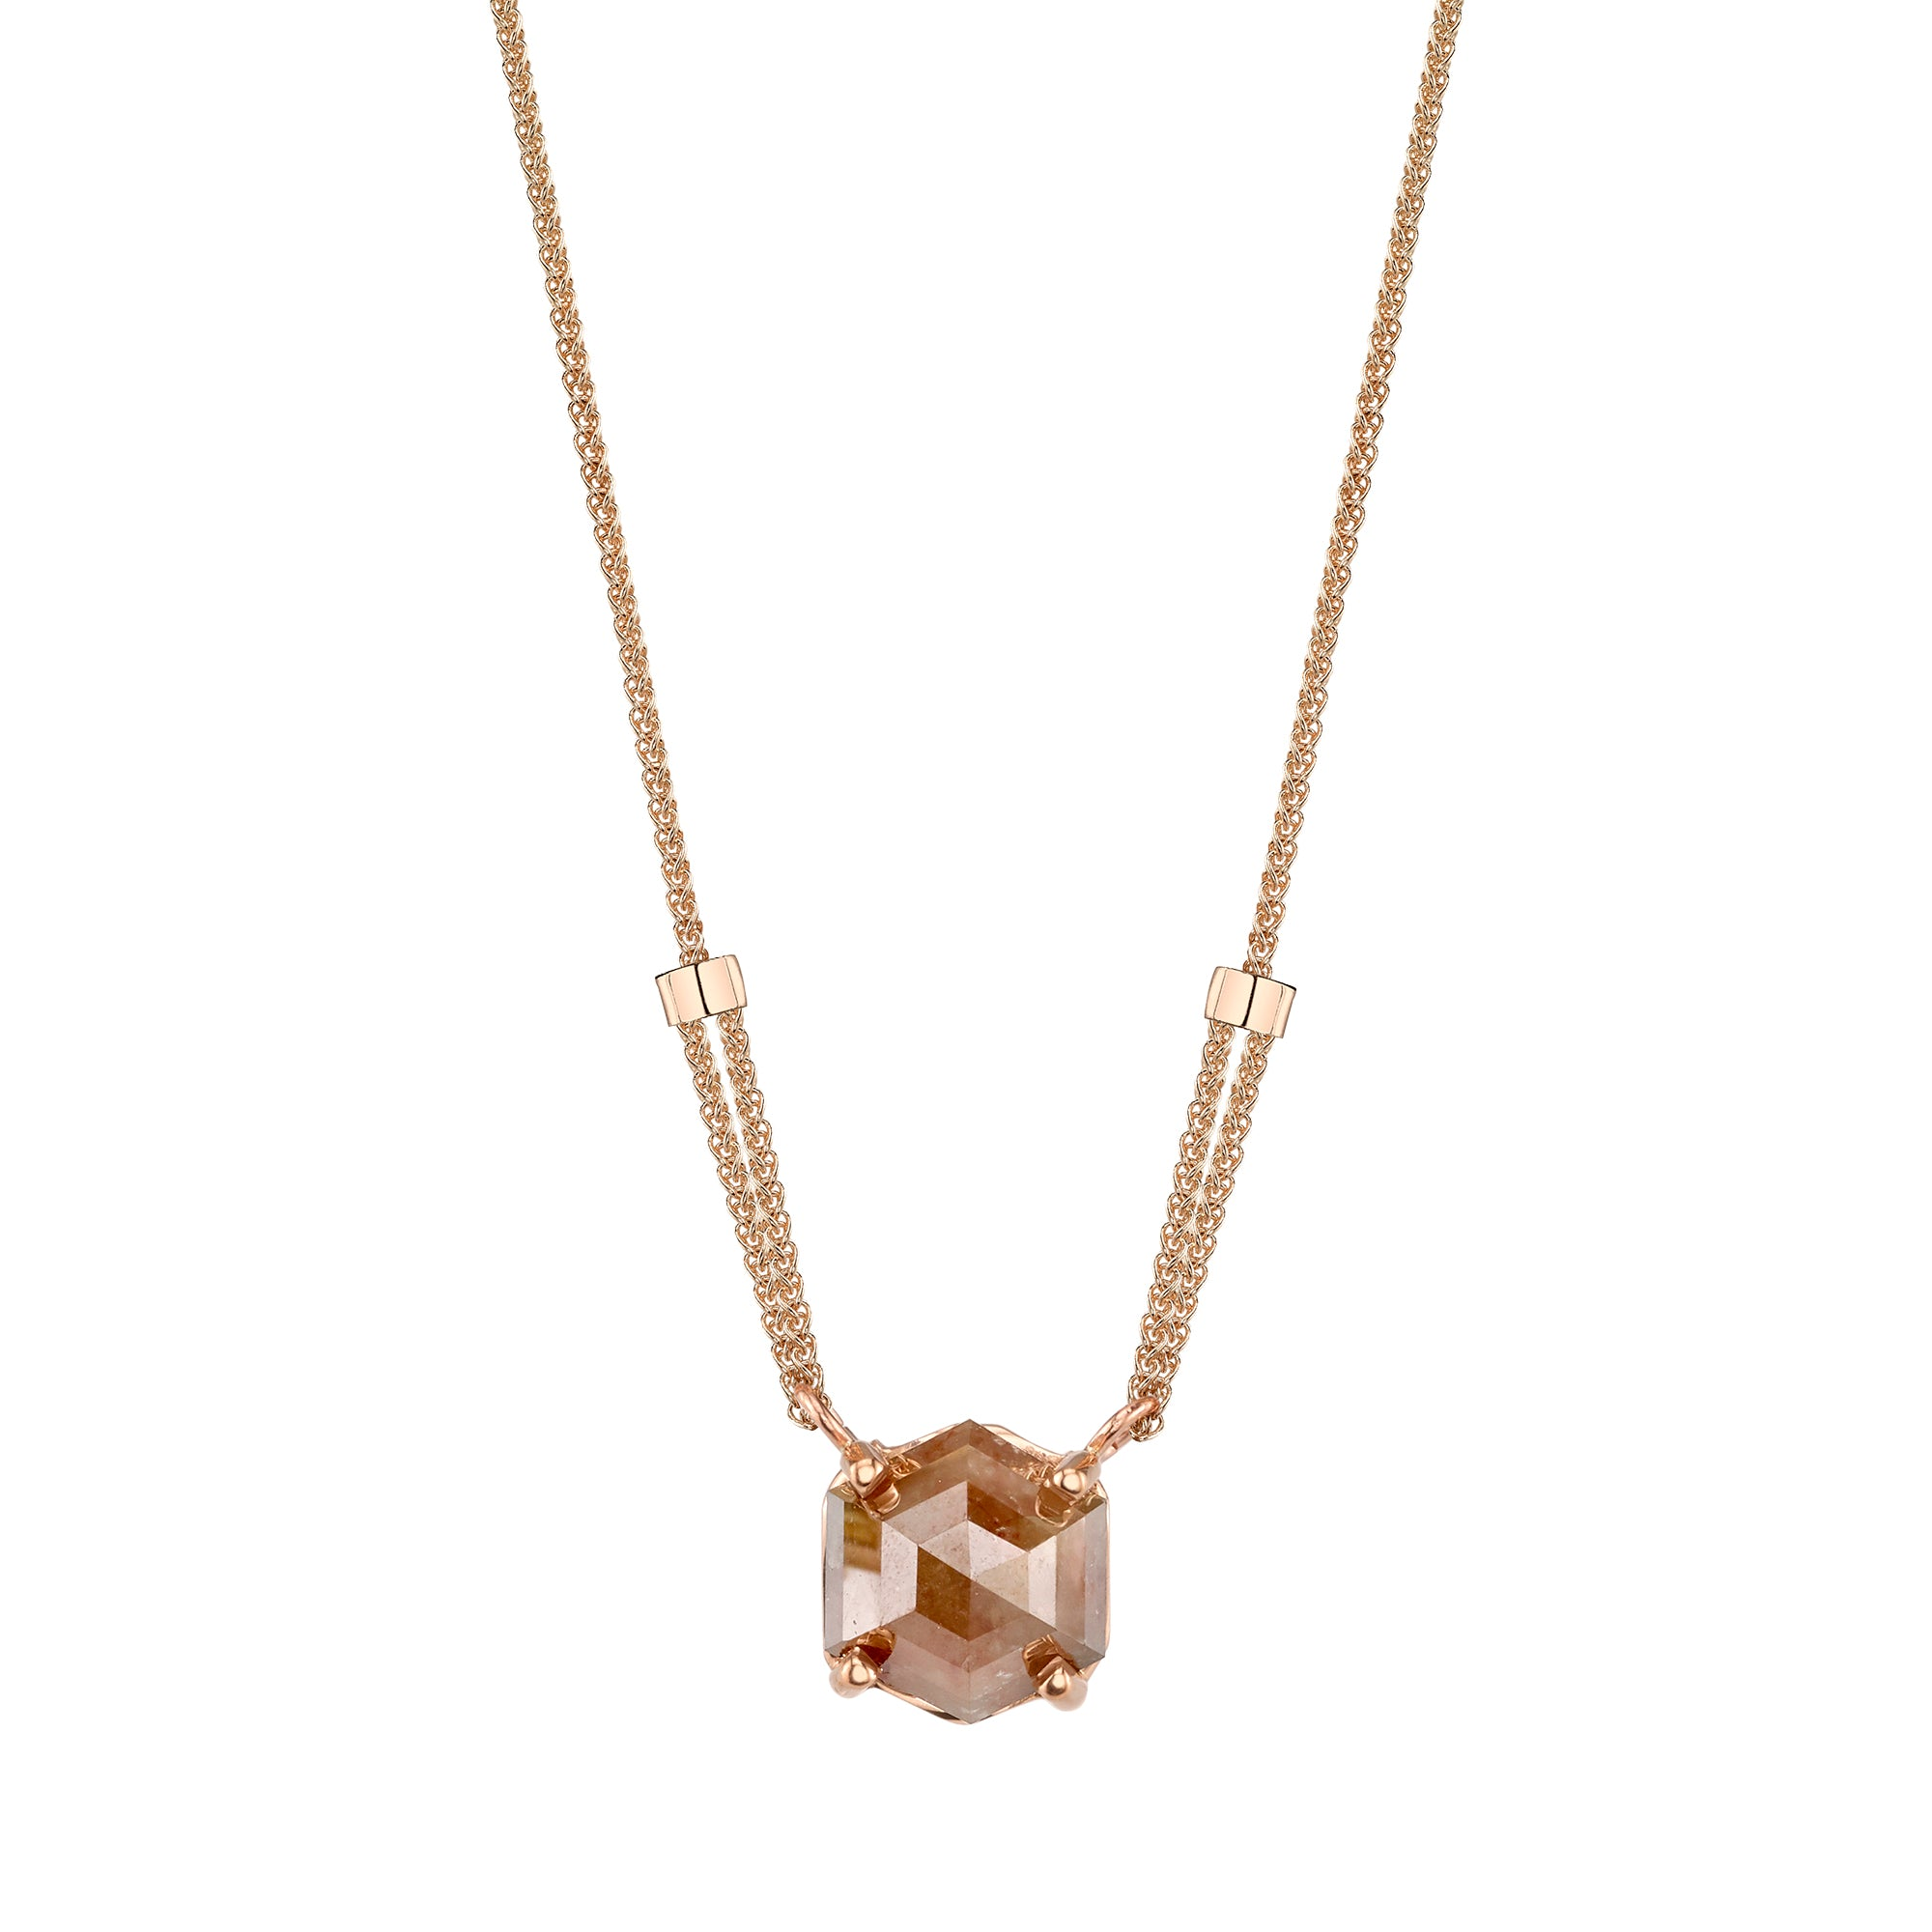 Rose Cut Opaque Diamond Necklace